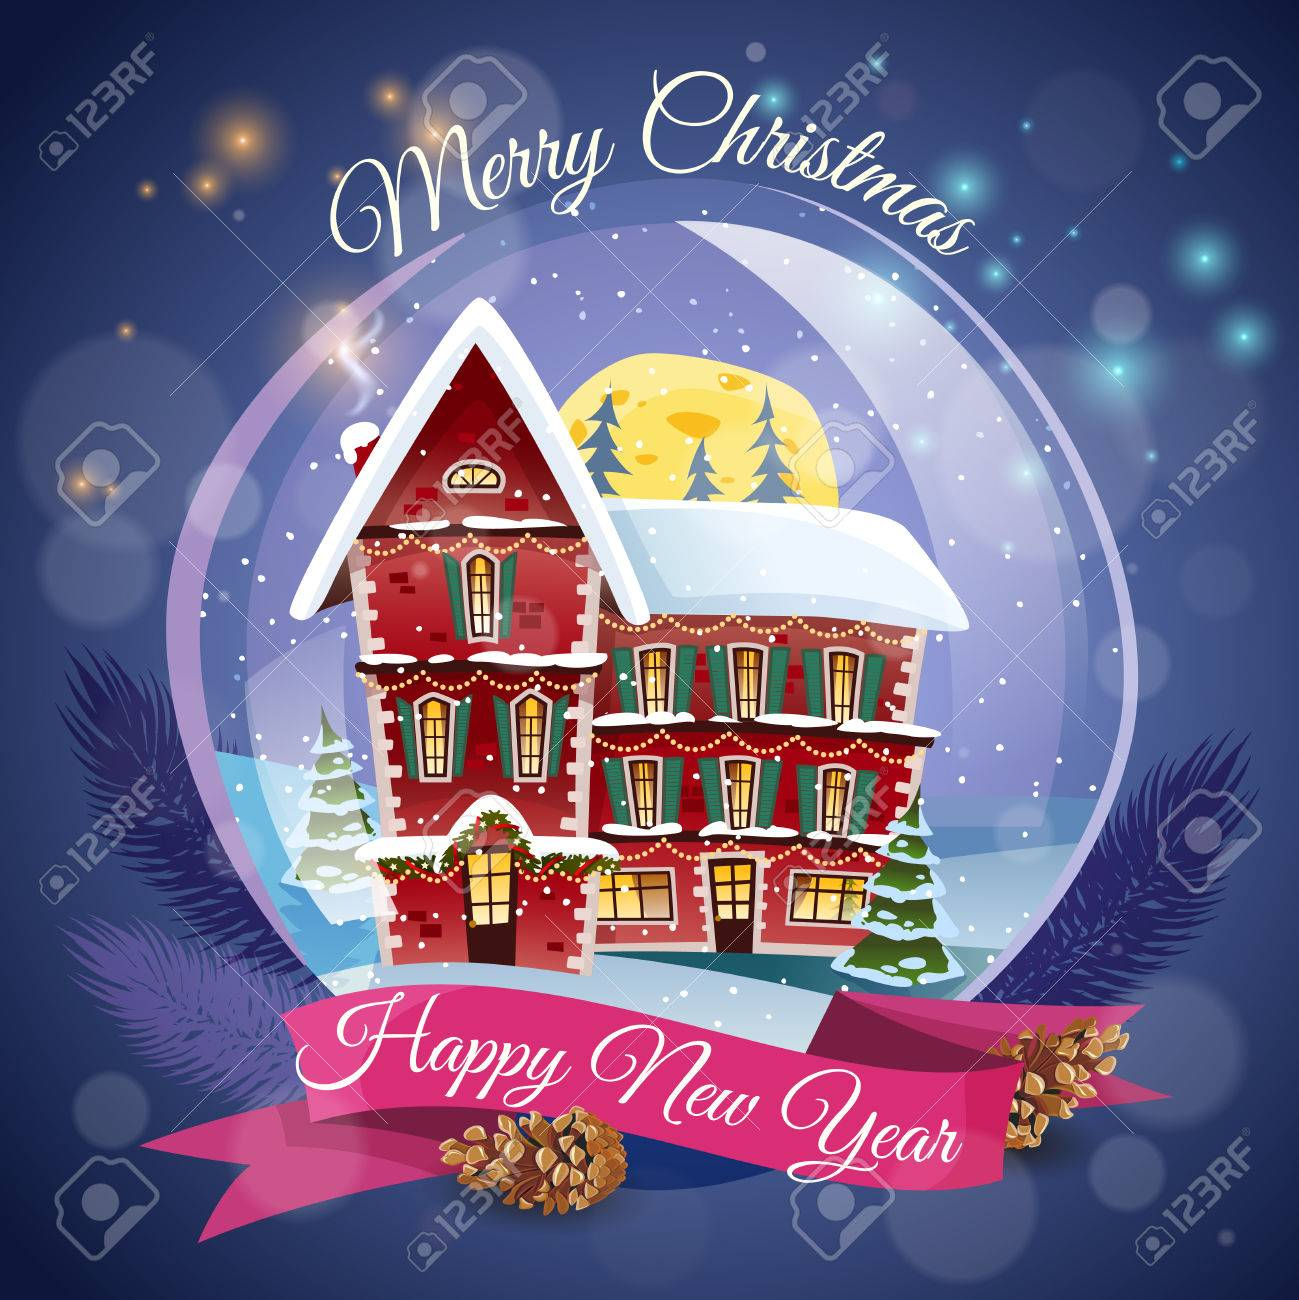 christmas greeting card with magic house at night lights background and happy new year wishing flat